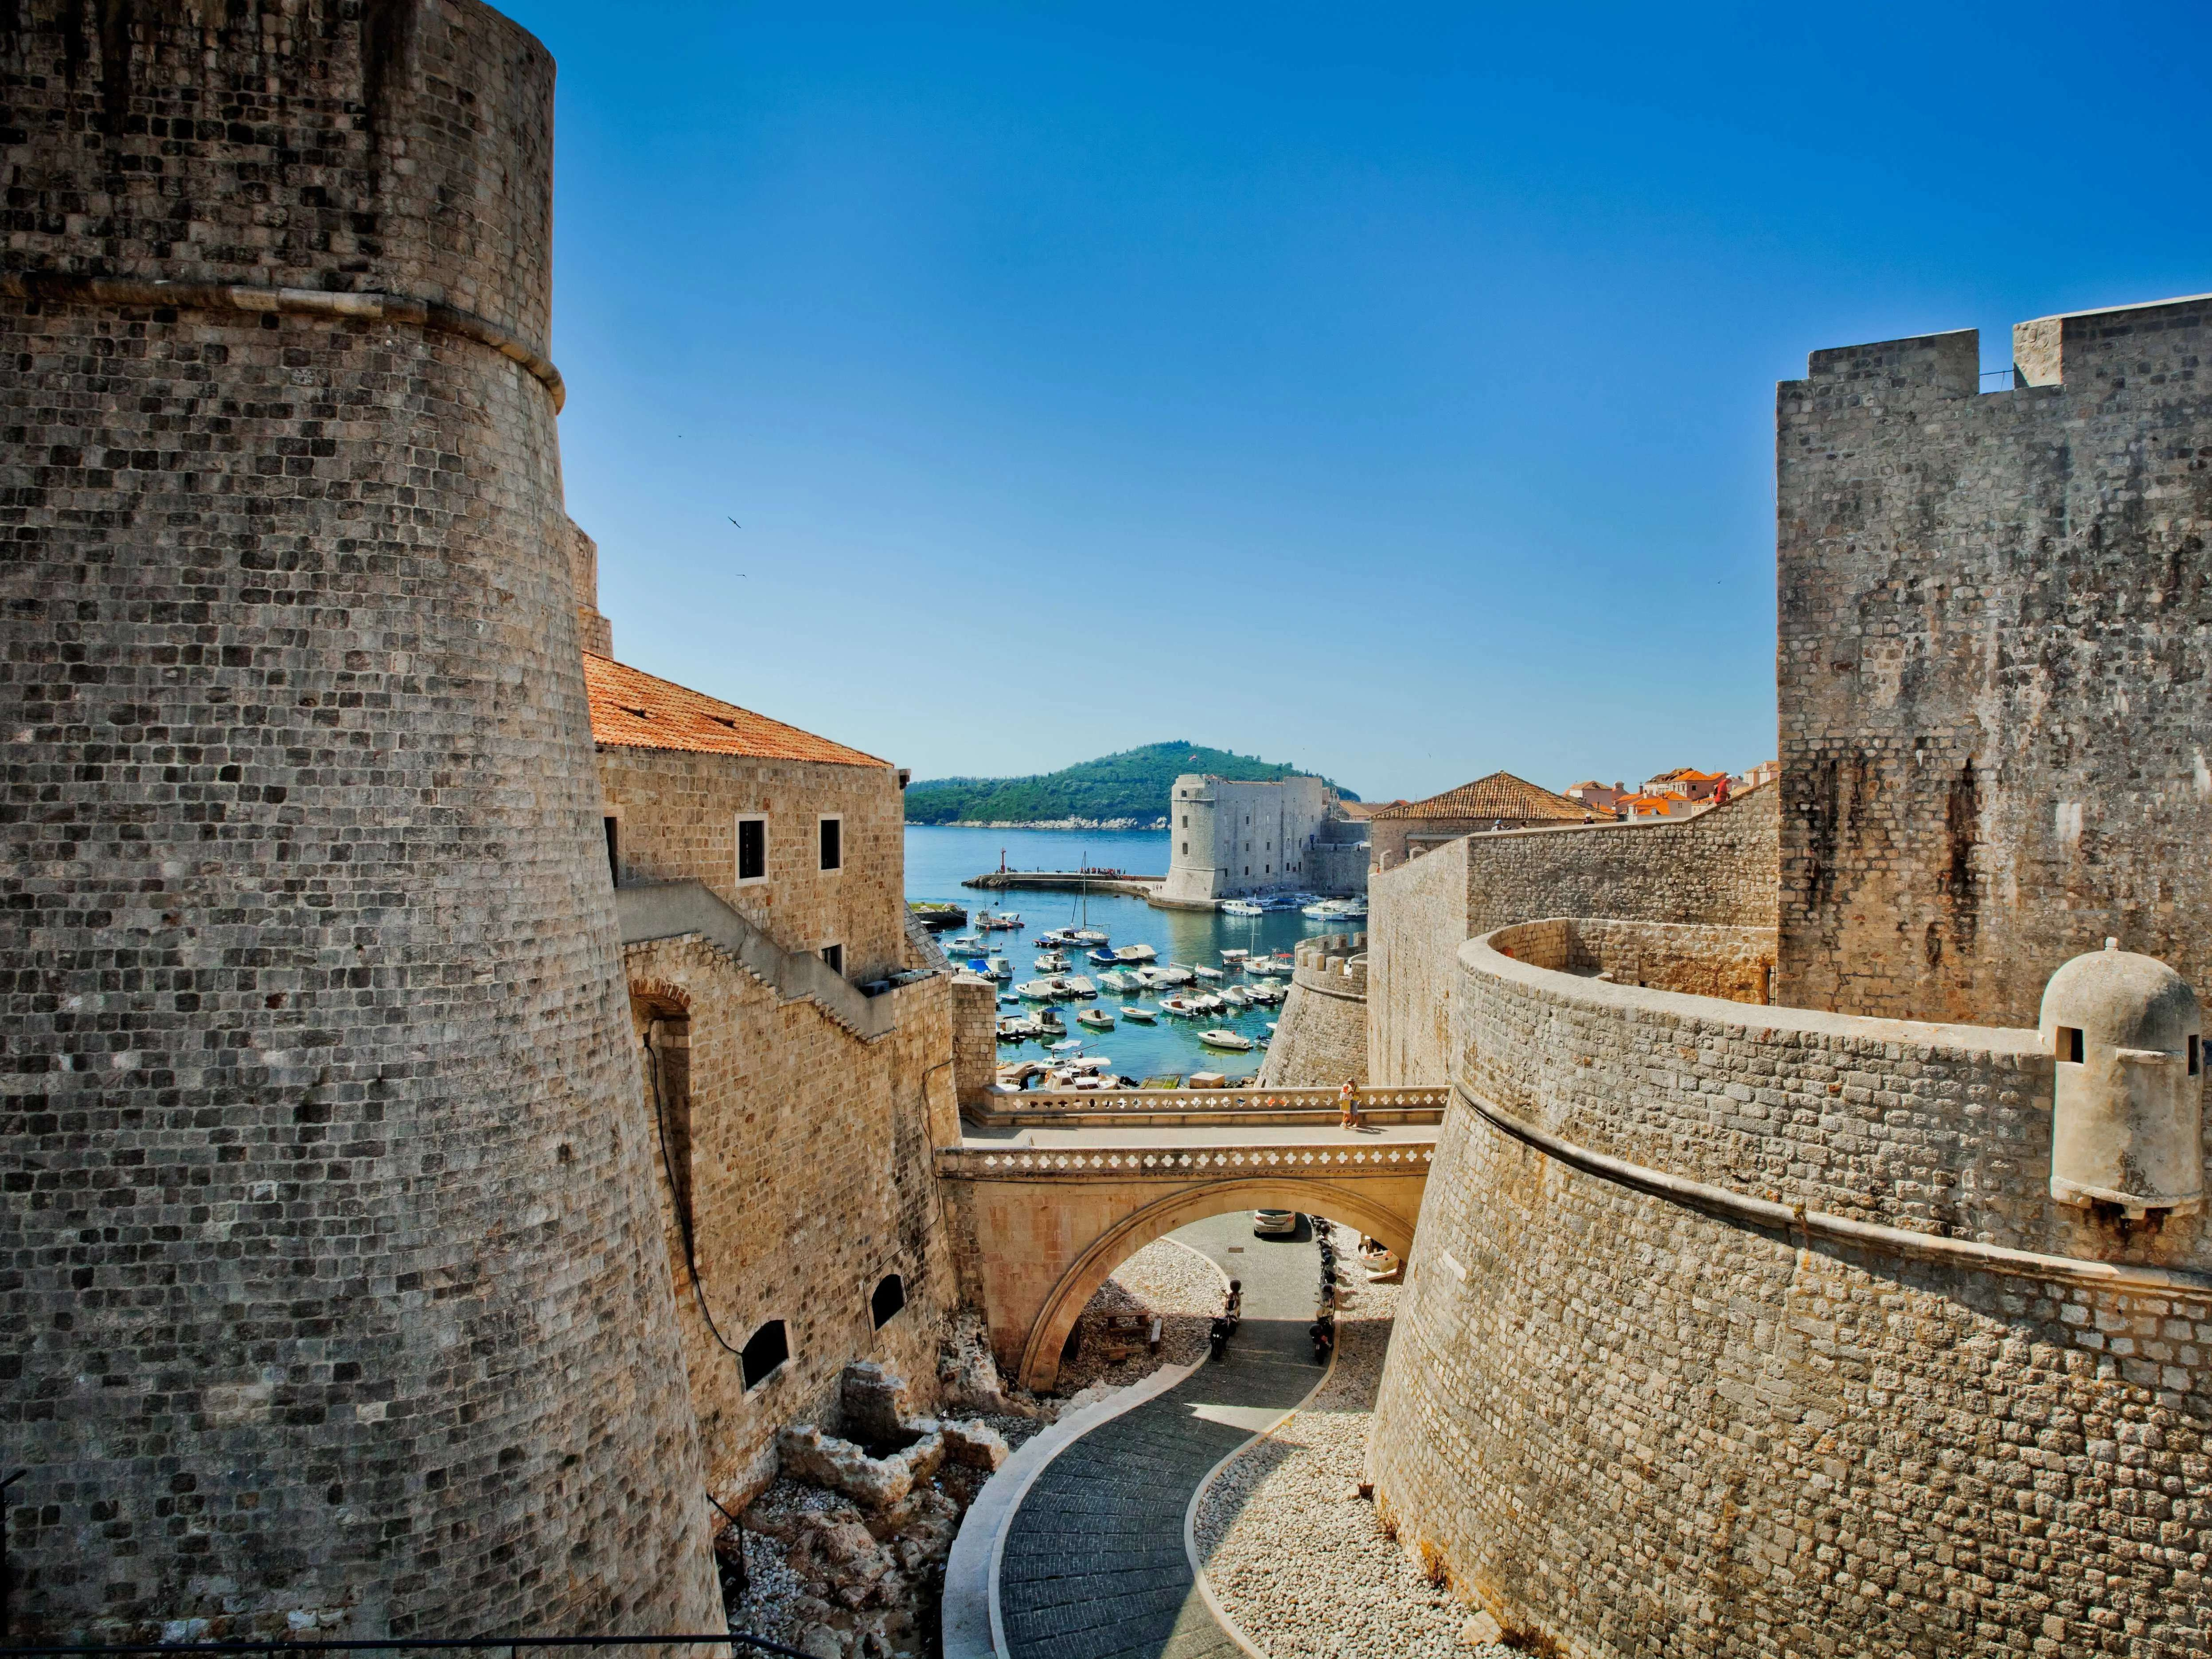 Walk along the Walls of Dubrovnik, which have protected the Croatian city since the 7th century.